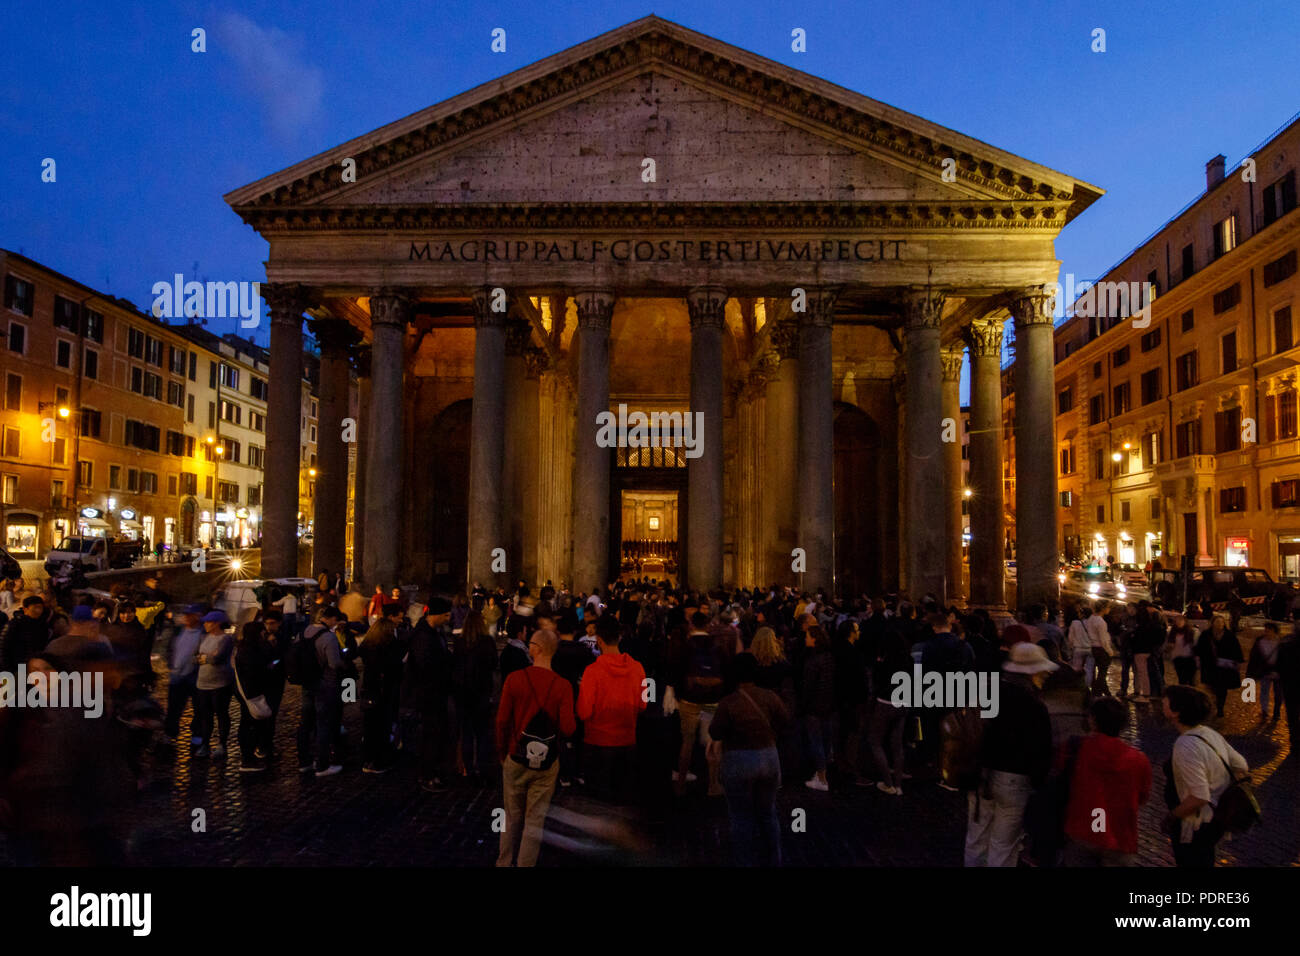 Toruist in front of the Pantheon at night, Rome, Italy. - Stock Image